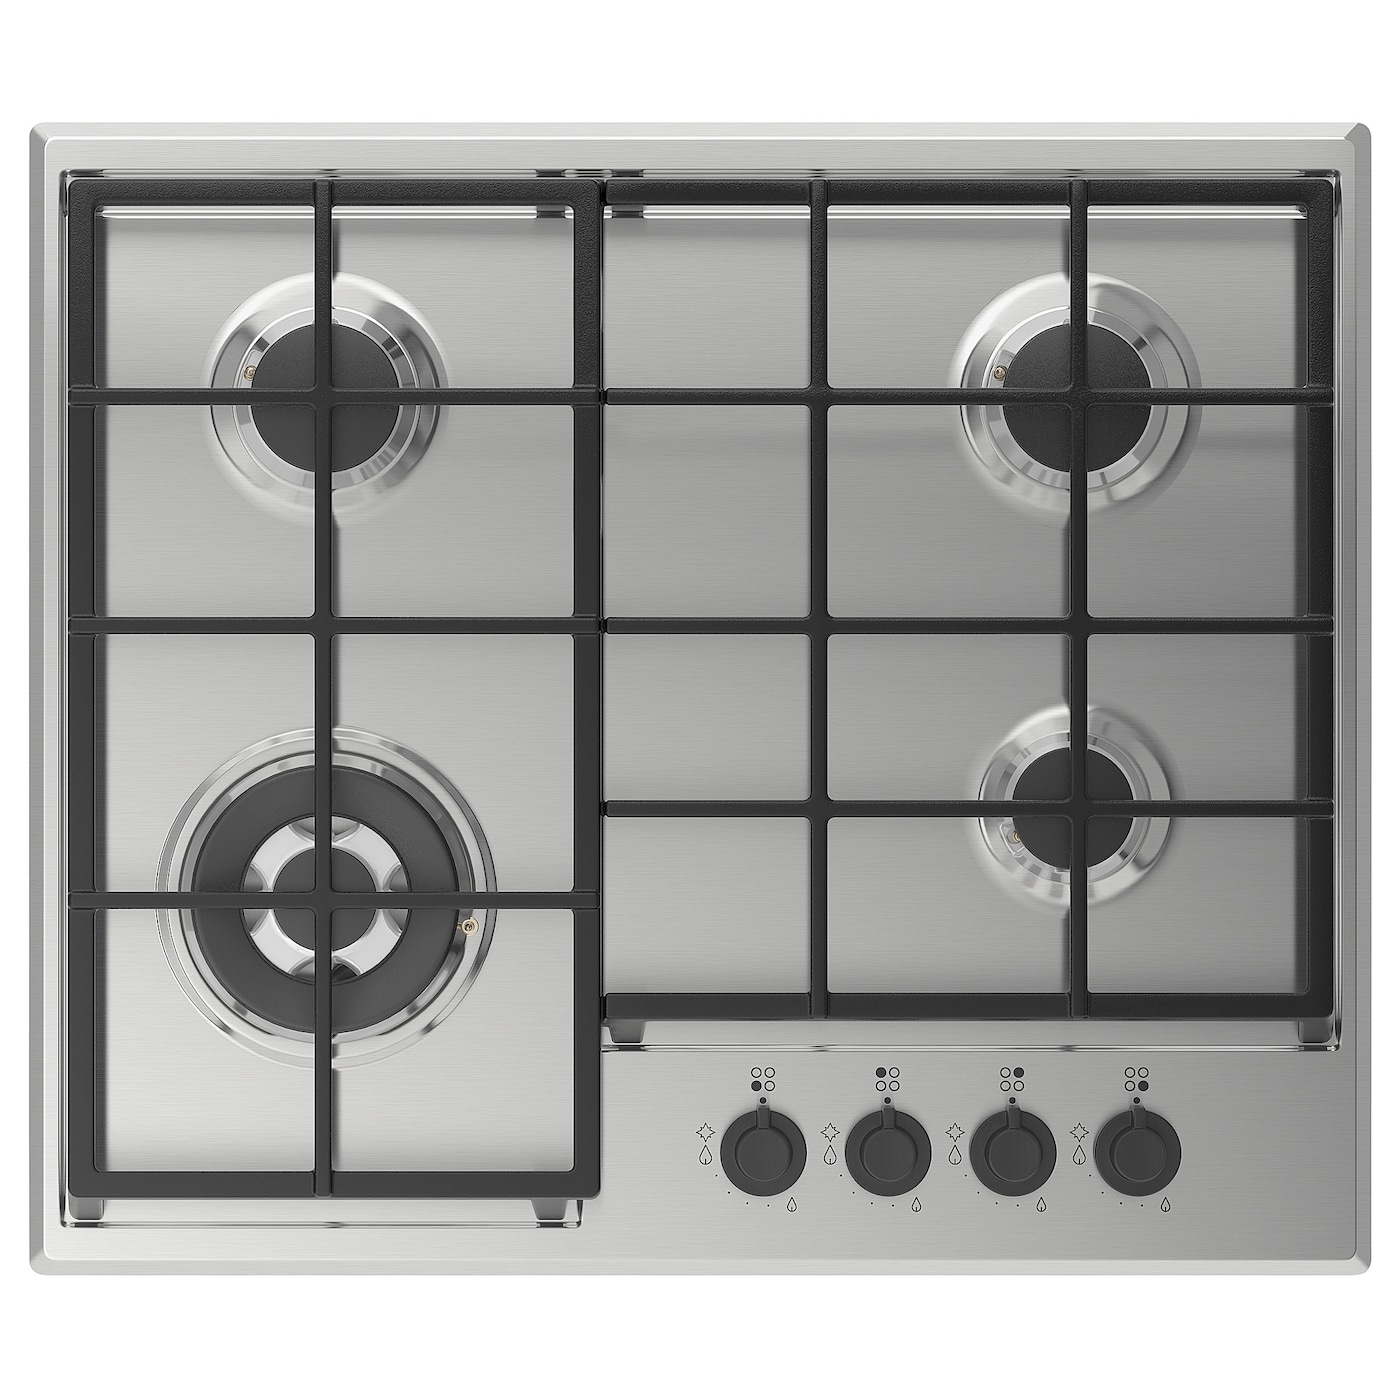 IKEA MATMÄSSIG gas hob 5 year guarantee. Read about the terms in the guarantee brochure.